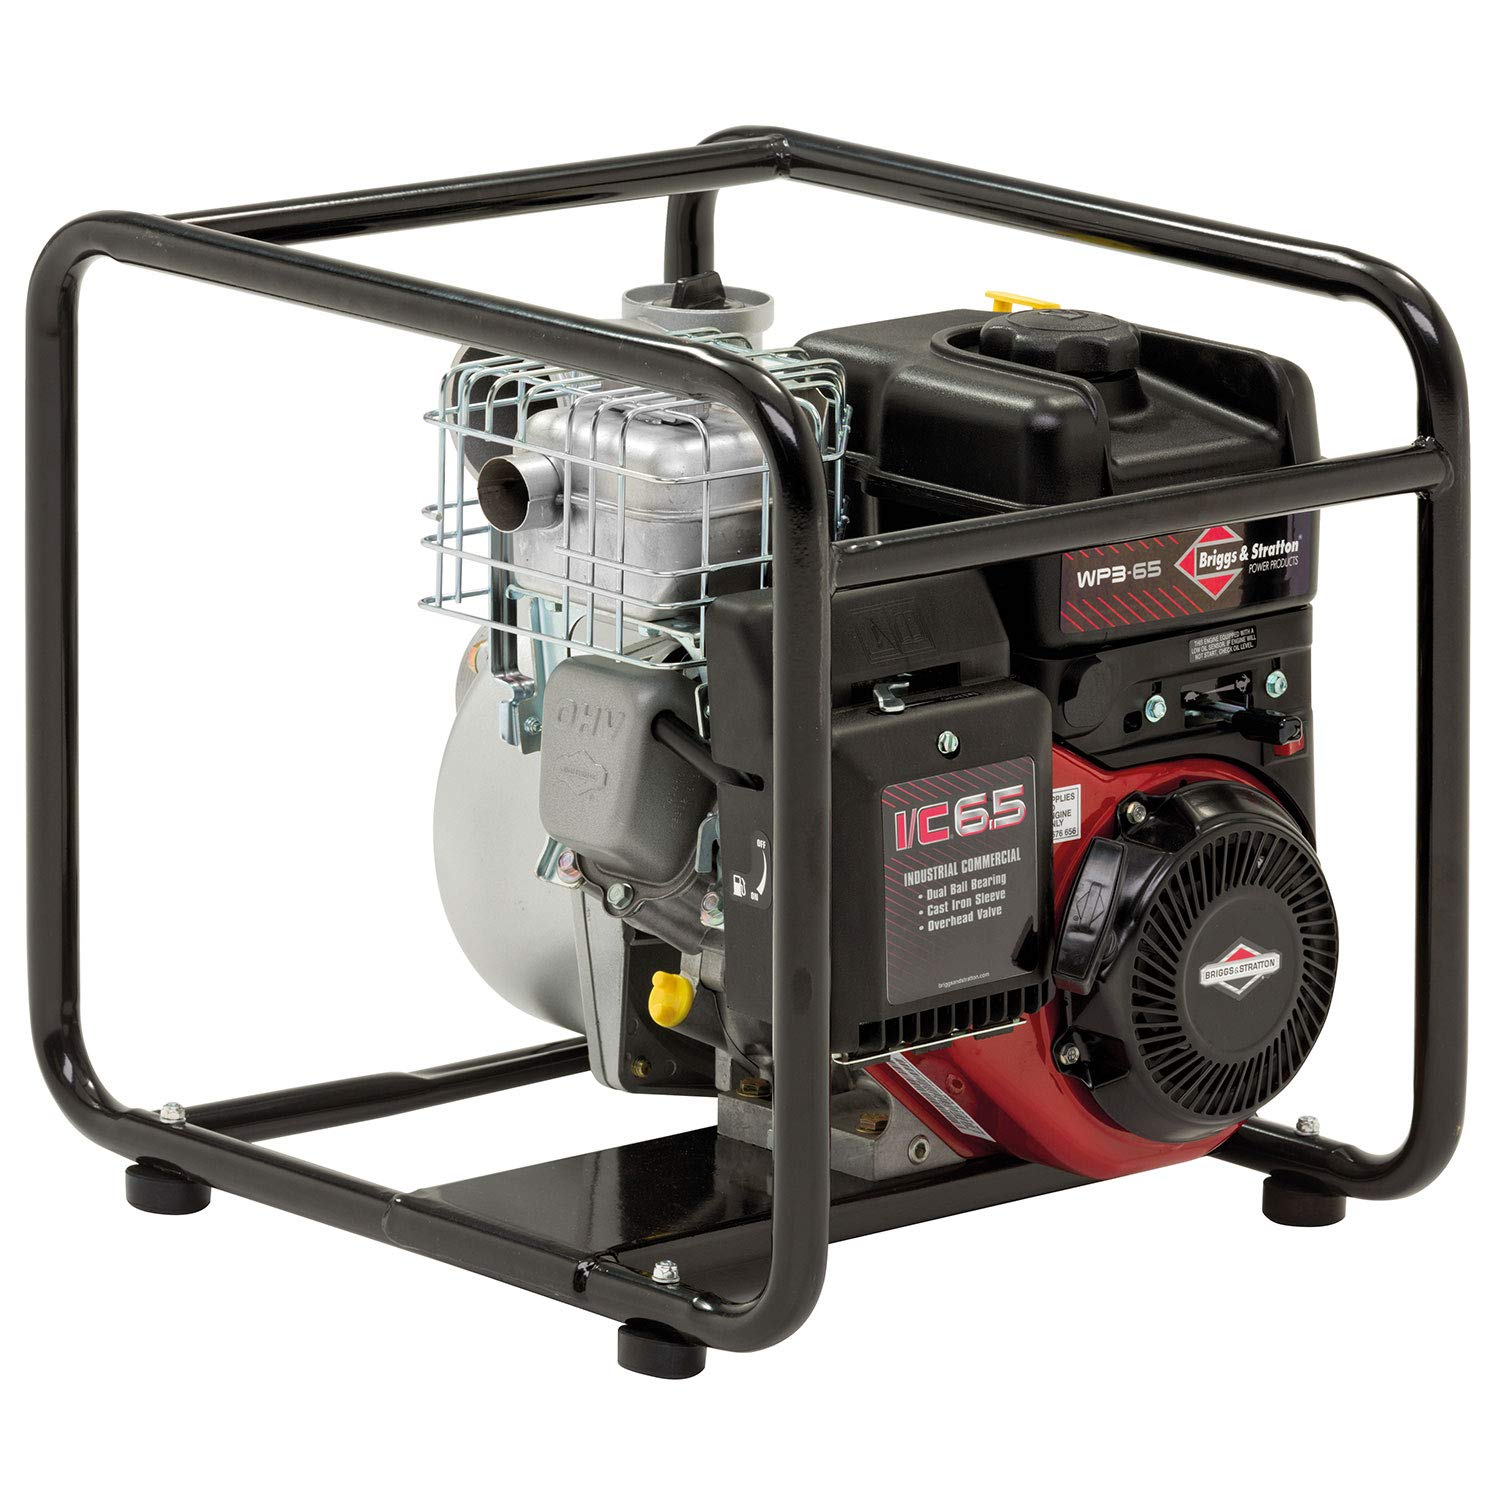 "Briggs and Stratton WP3-65 3""/76mm Elite Petrol Water Pump, 930 Litre/min, 8m Vertical Suction, INTEK I/C Engine, 073011"